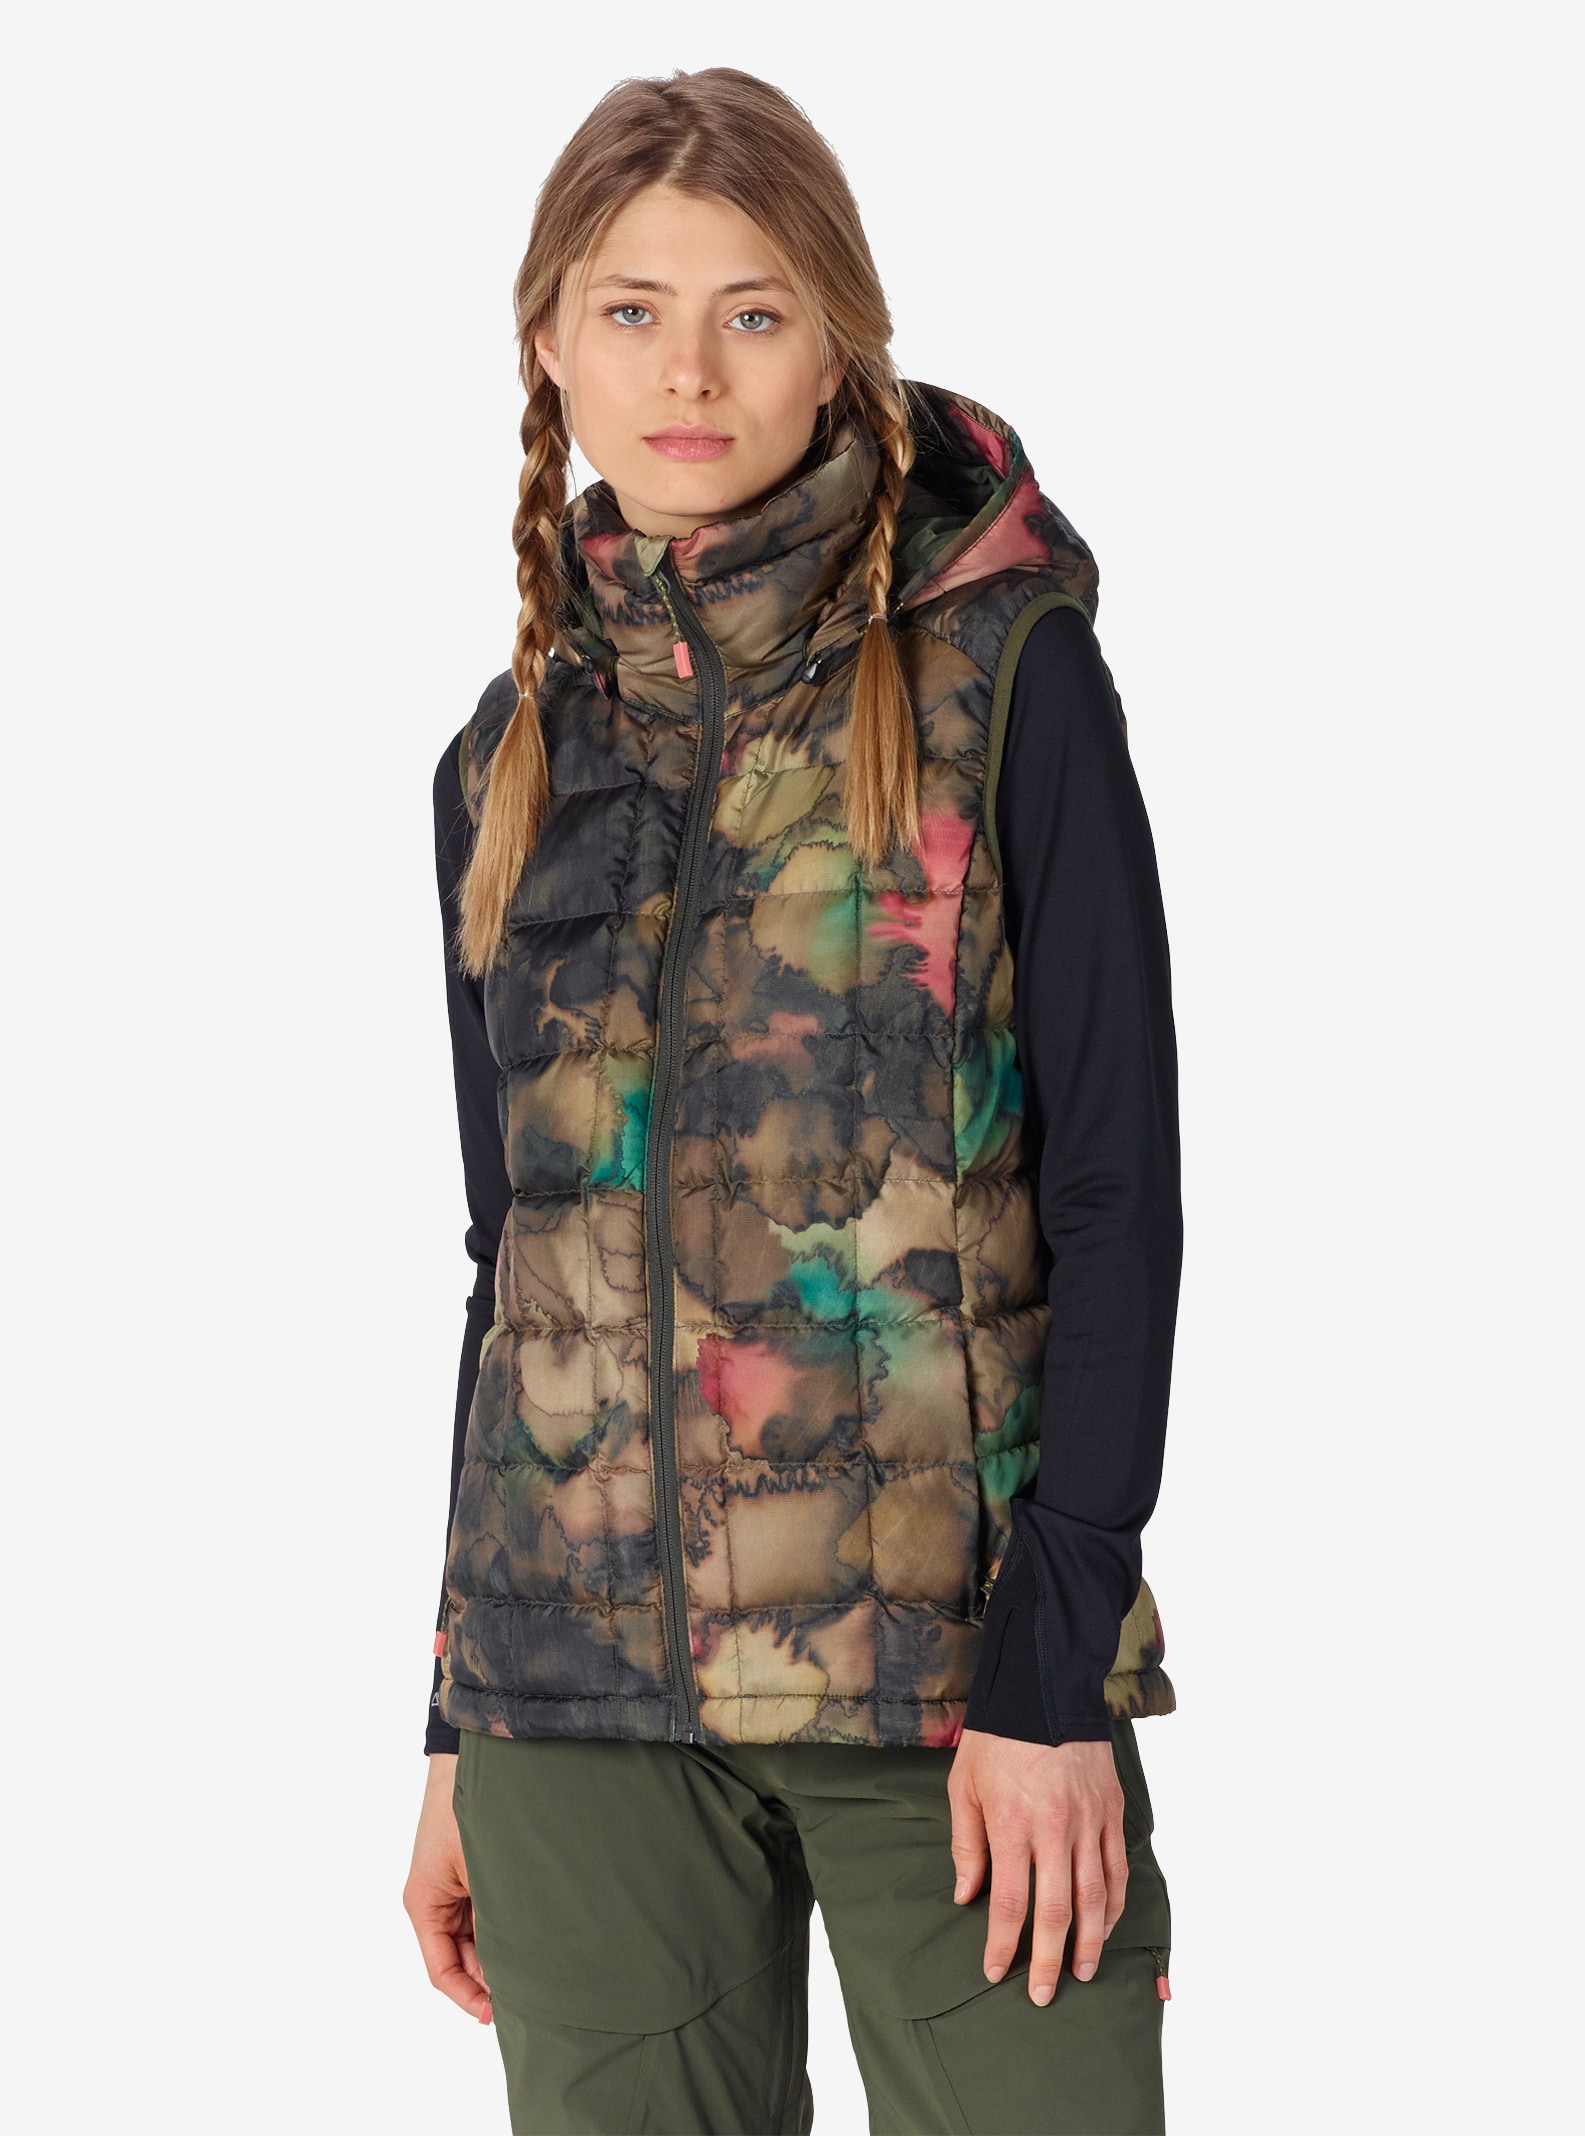 Women's Burton [ak] Squall Down Insulator Vest shown in Tea Camo